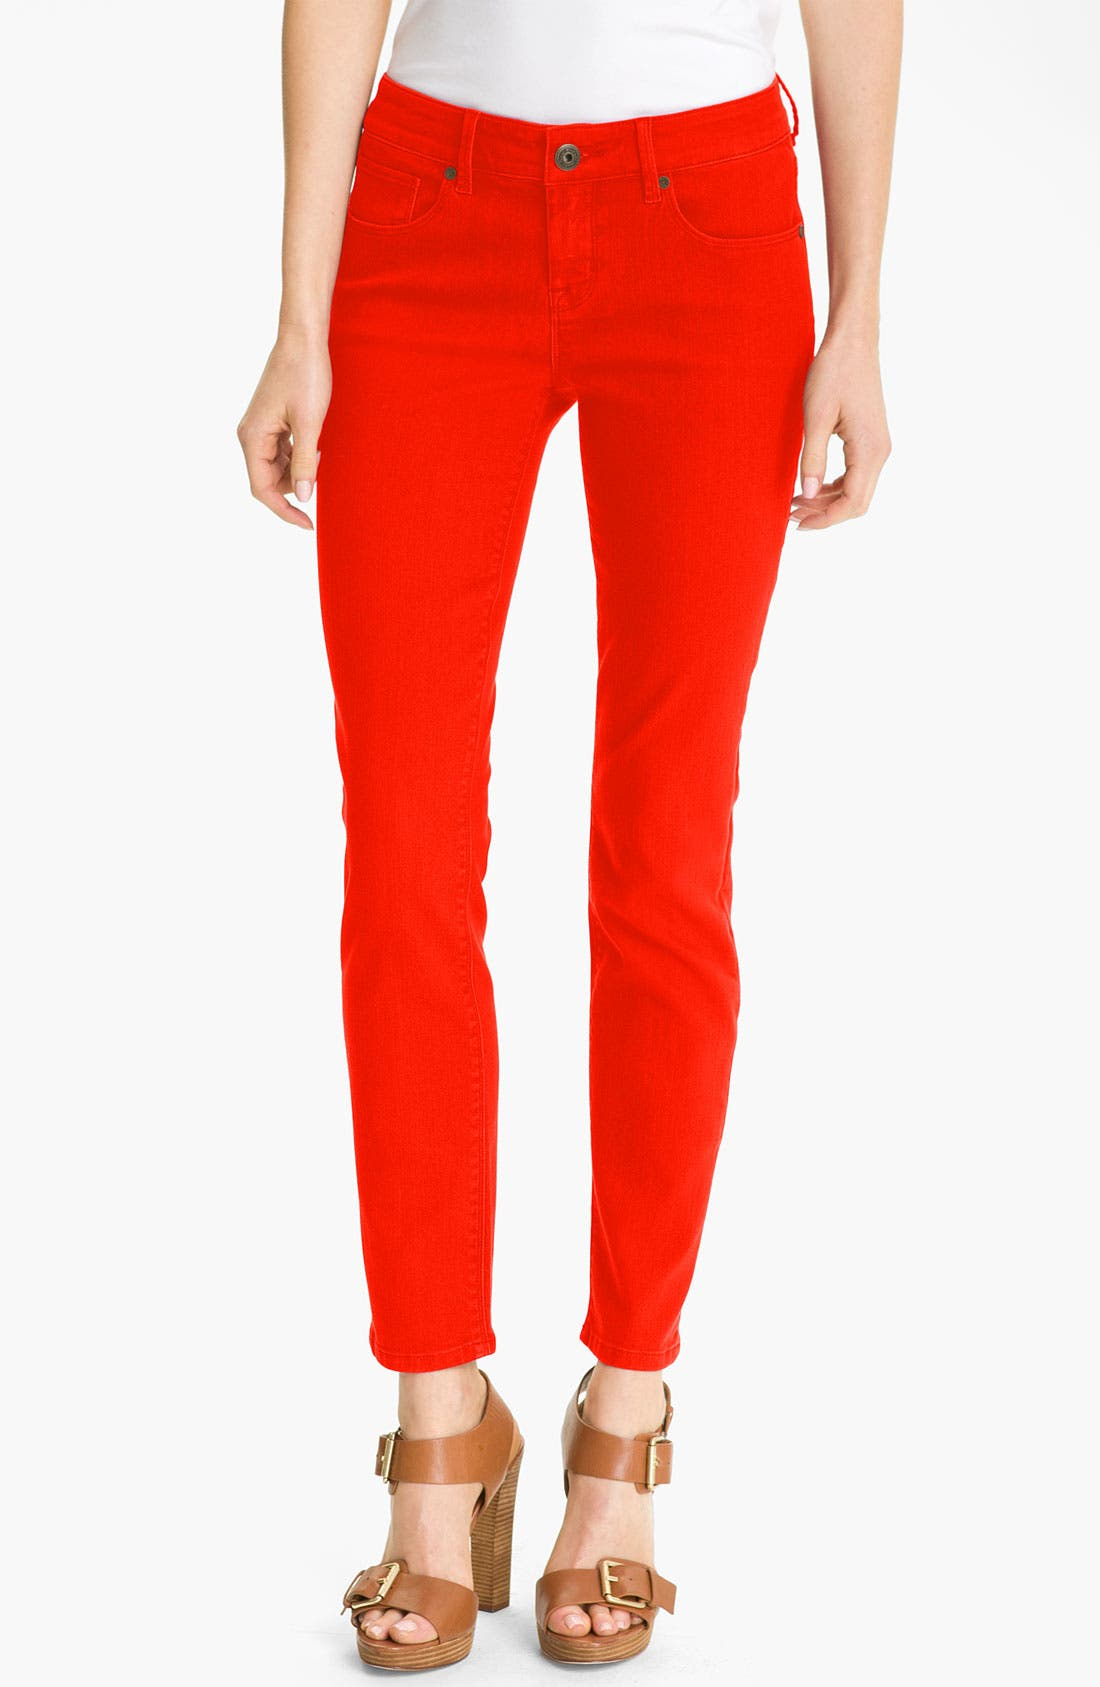 Main Image - Isaac Mizrahi Jeans 'Samantha' Colored Denim Skinny Jeans